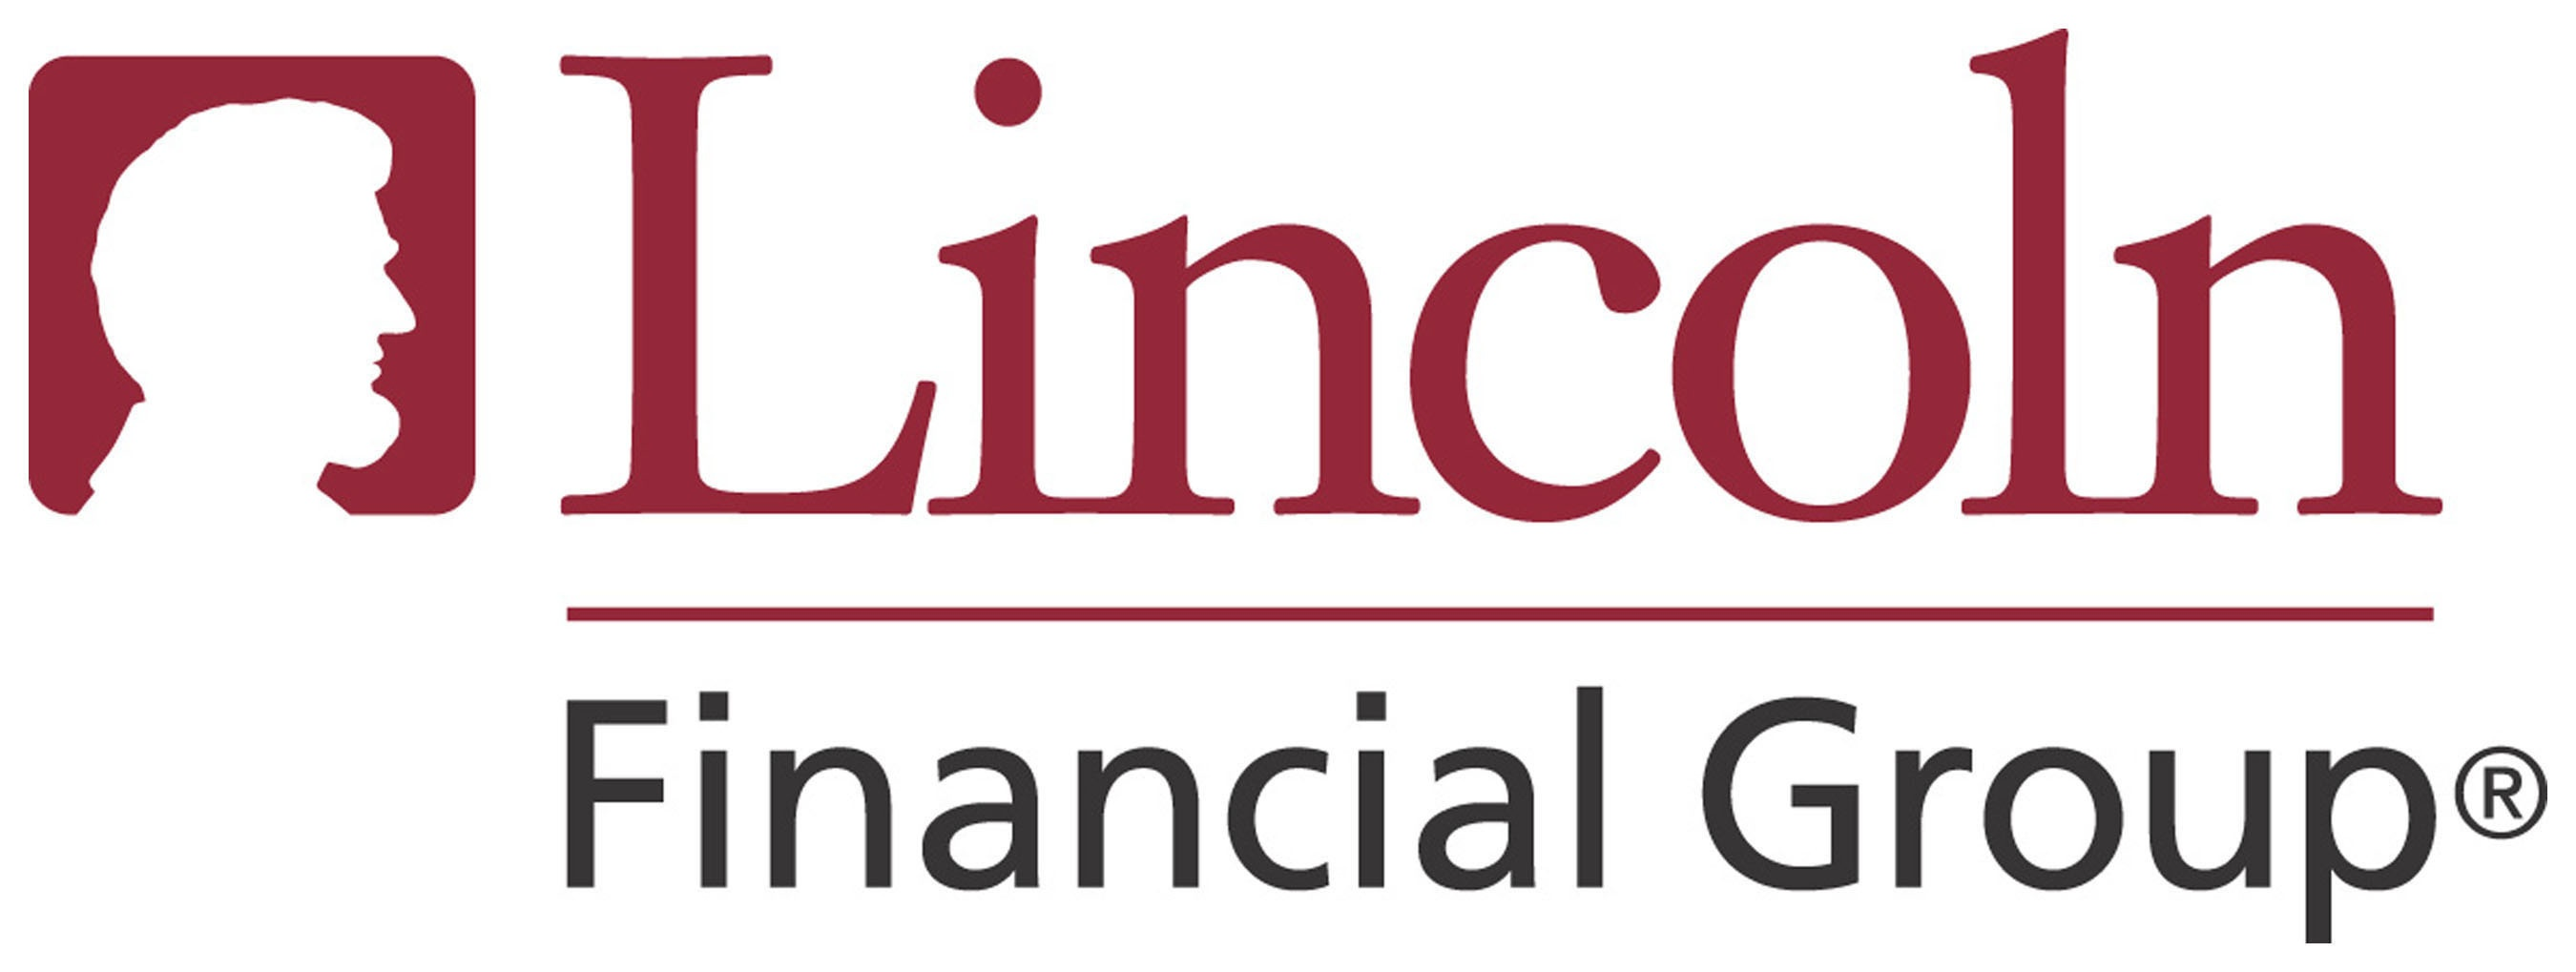 lincoln_financial_logo.jpg